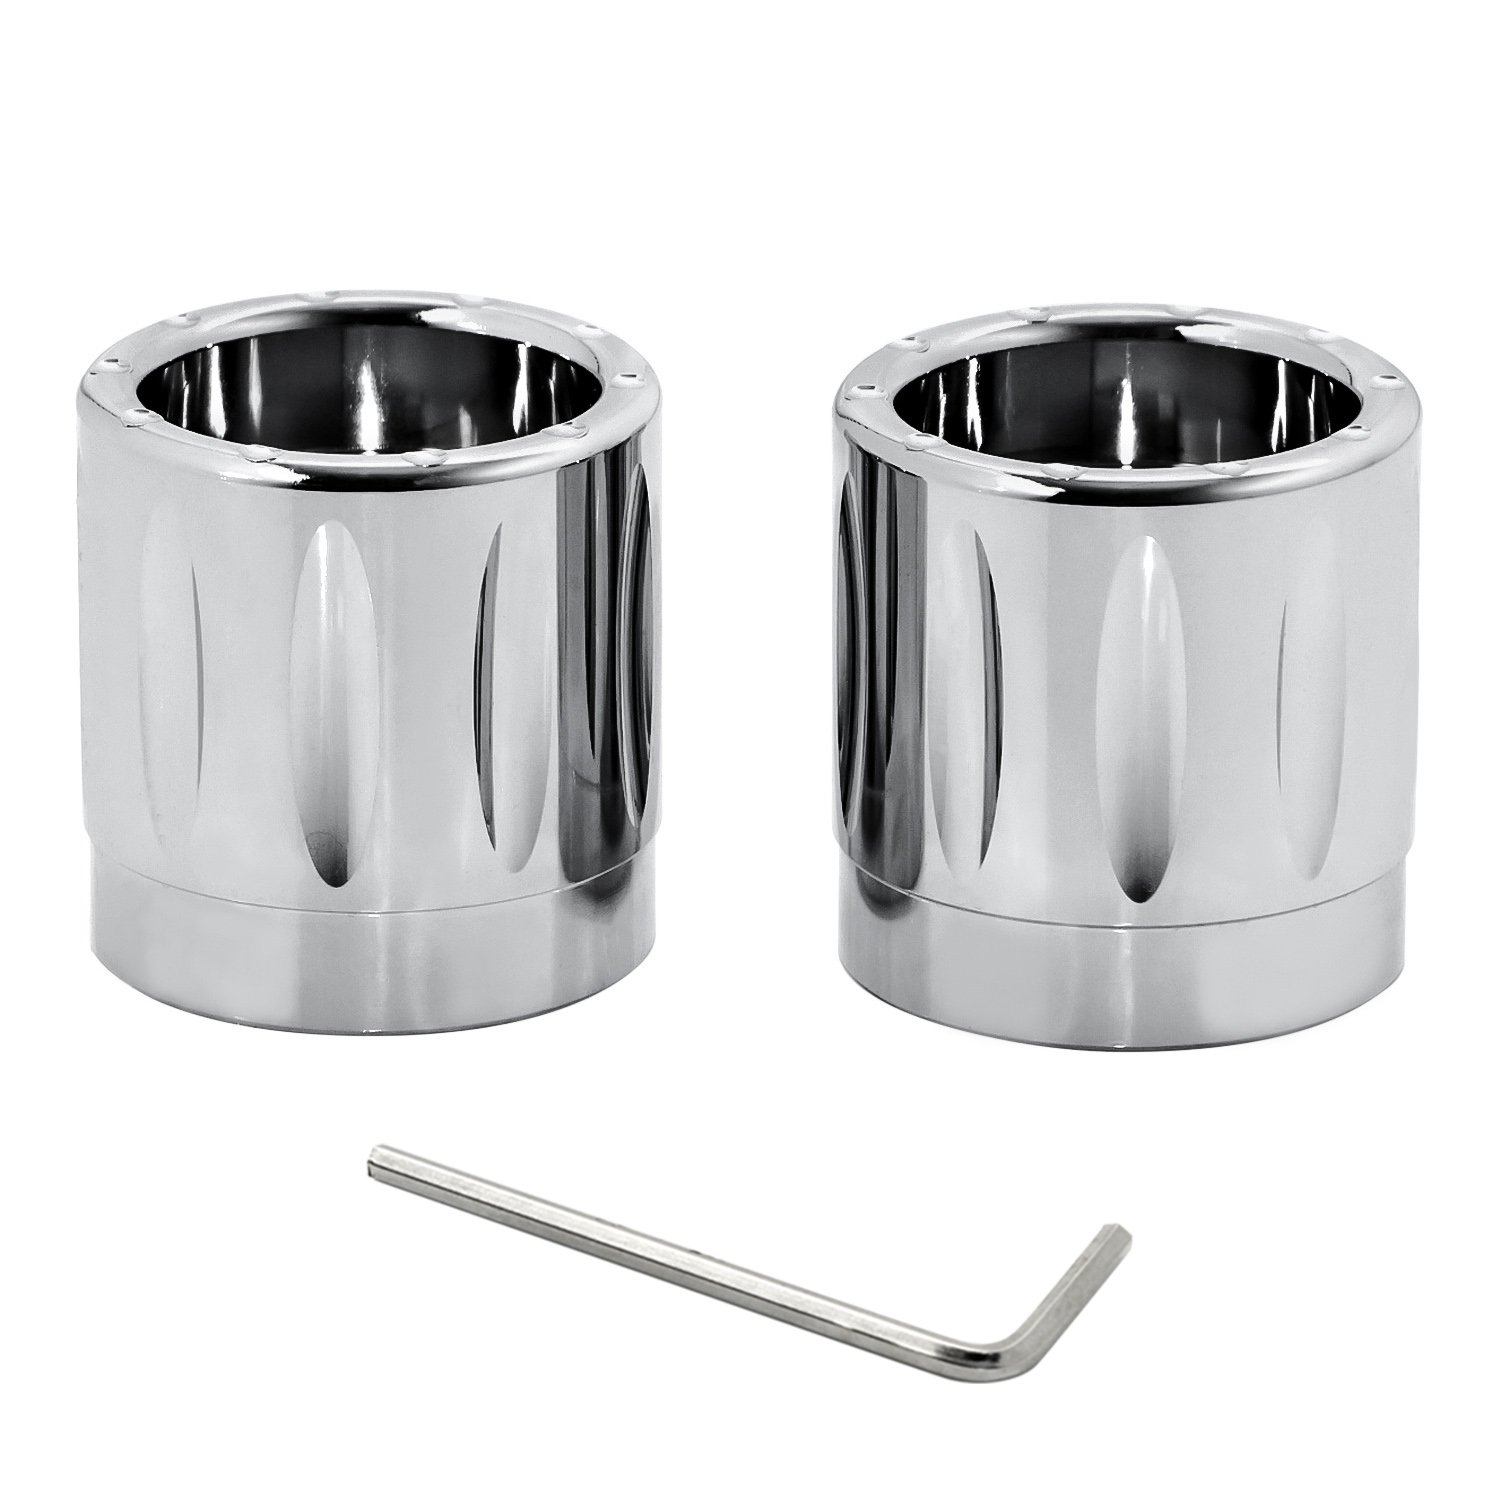 Senkauto Front Axle Cap Nut Cover For Harley Sportster Touring Dyna Touring Softail Electra Street Glide (Chrome 03)